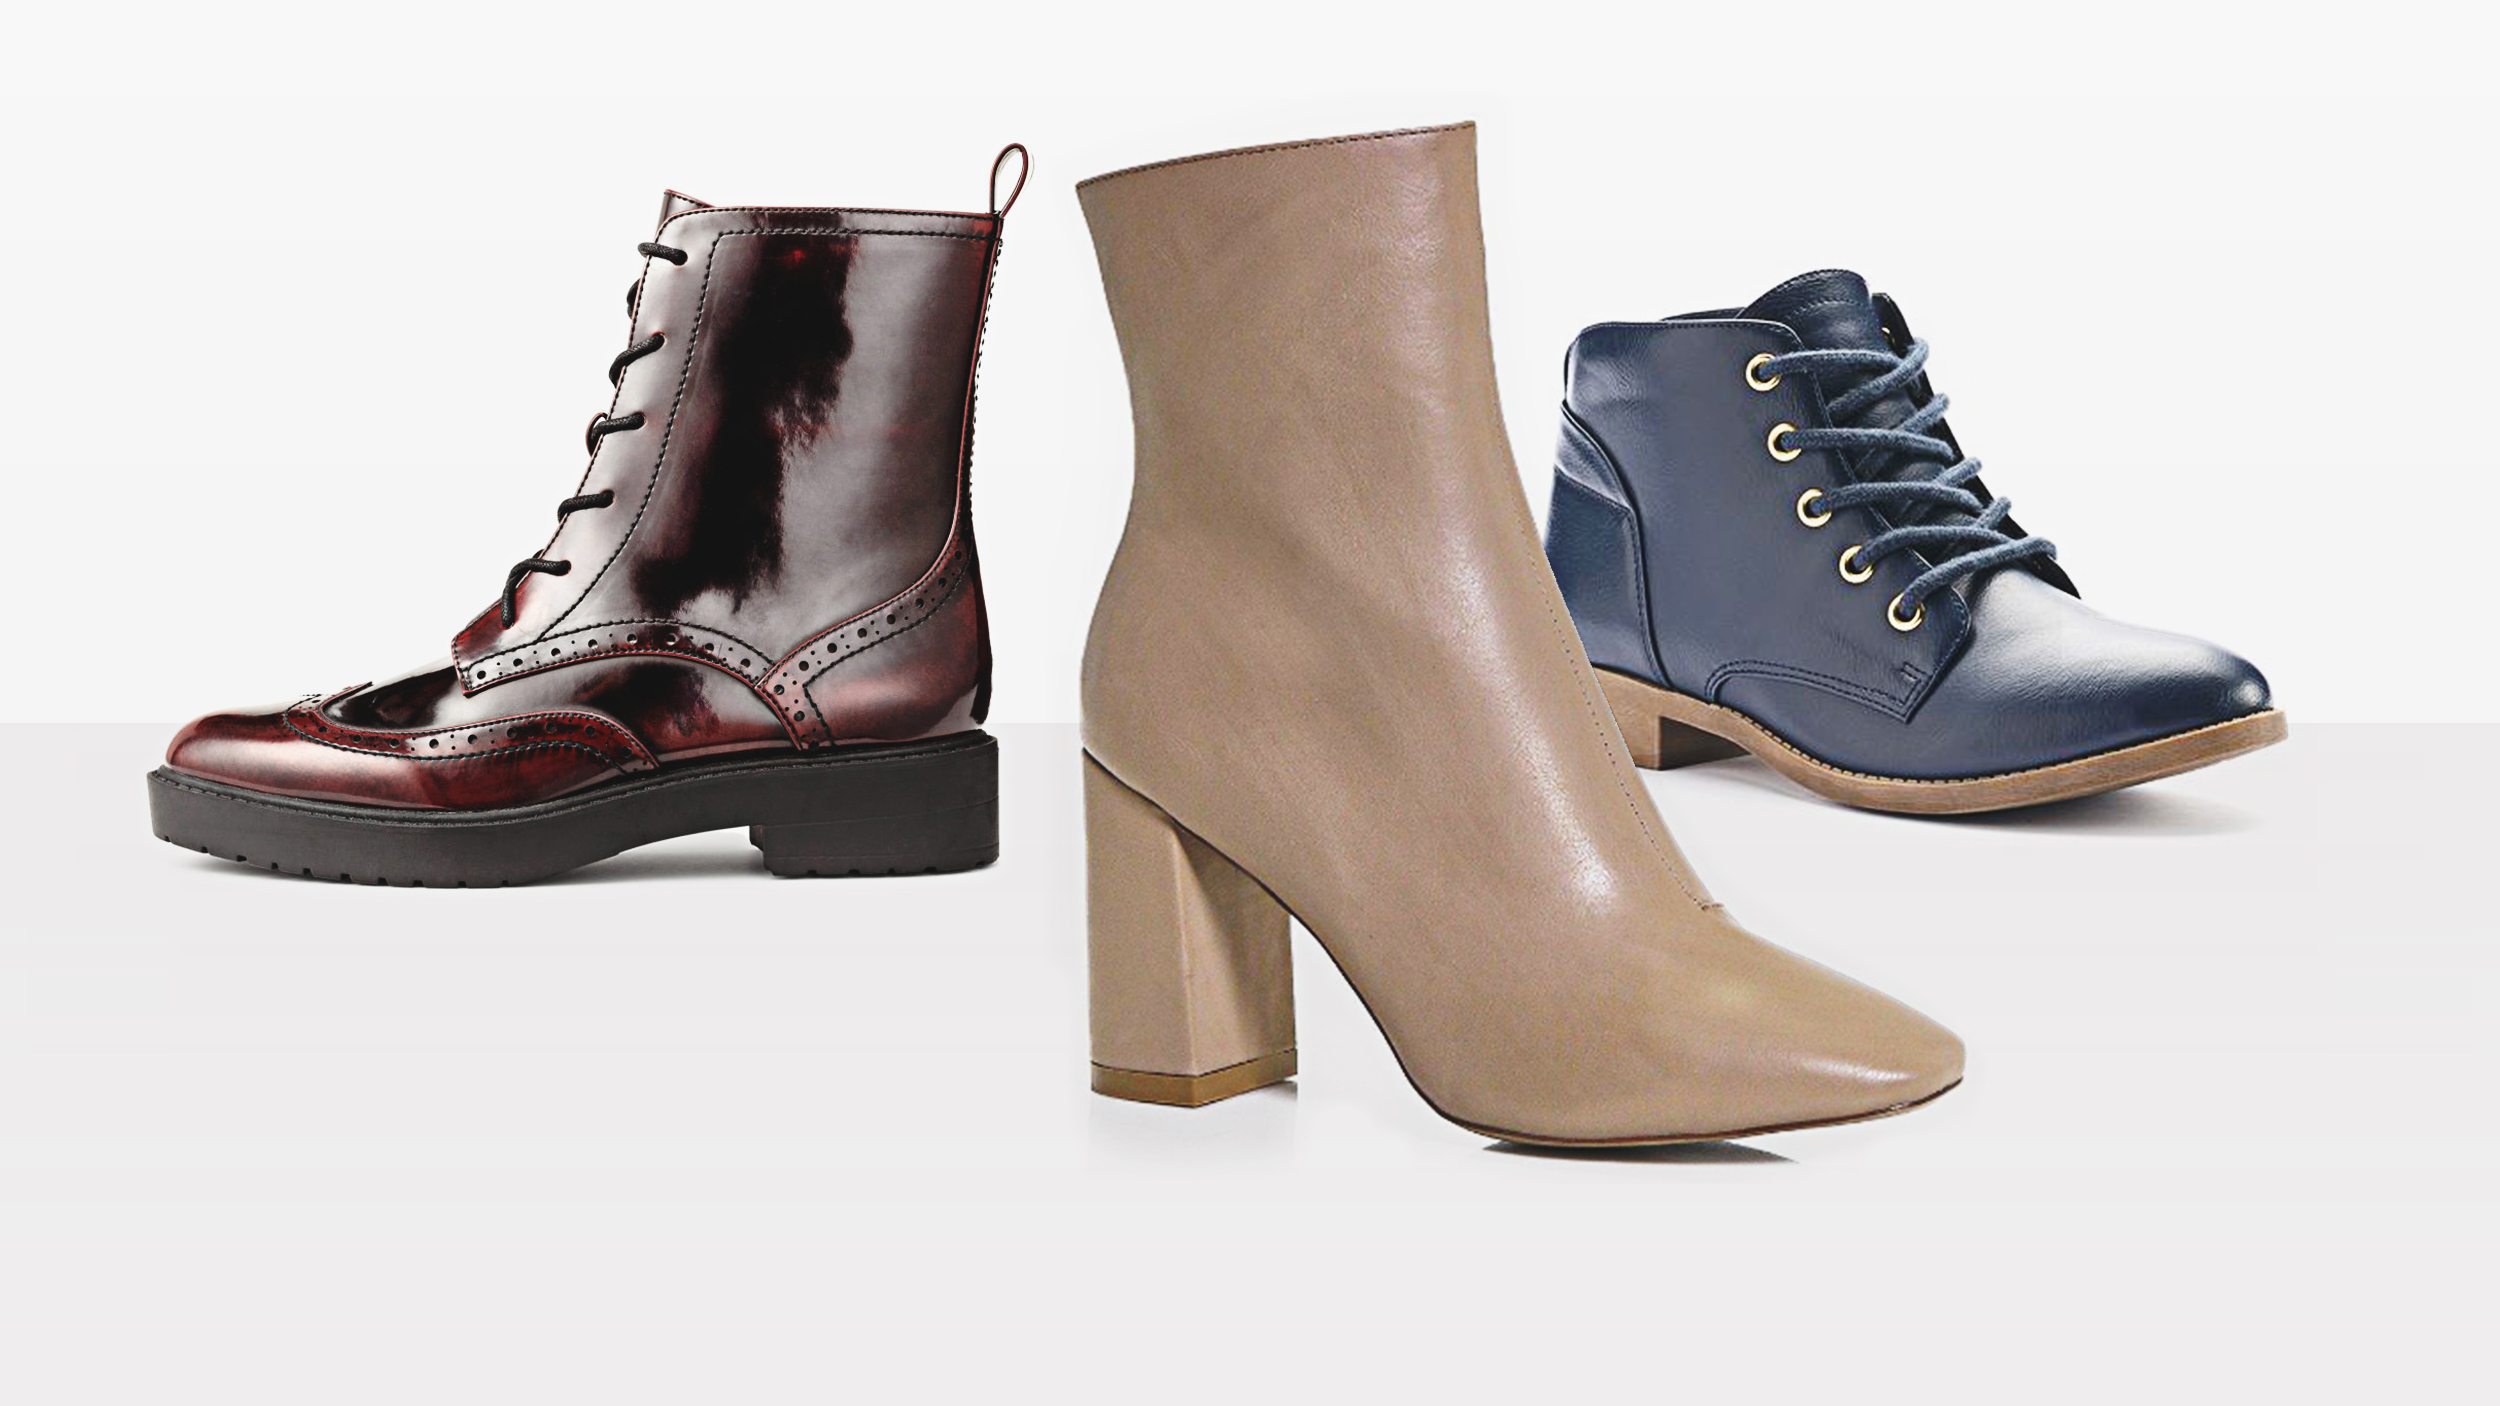 6c9c38b764 Fall ankle boots to buy now: Trendy, polished and more